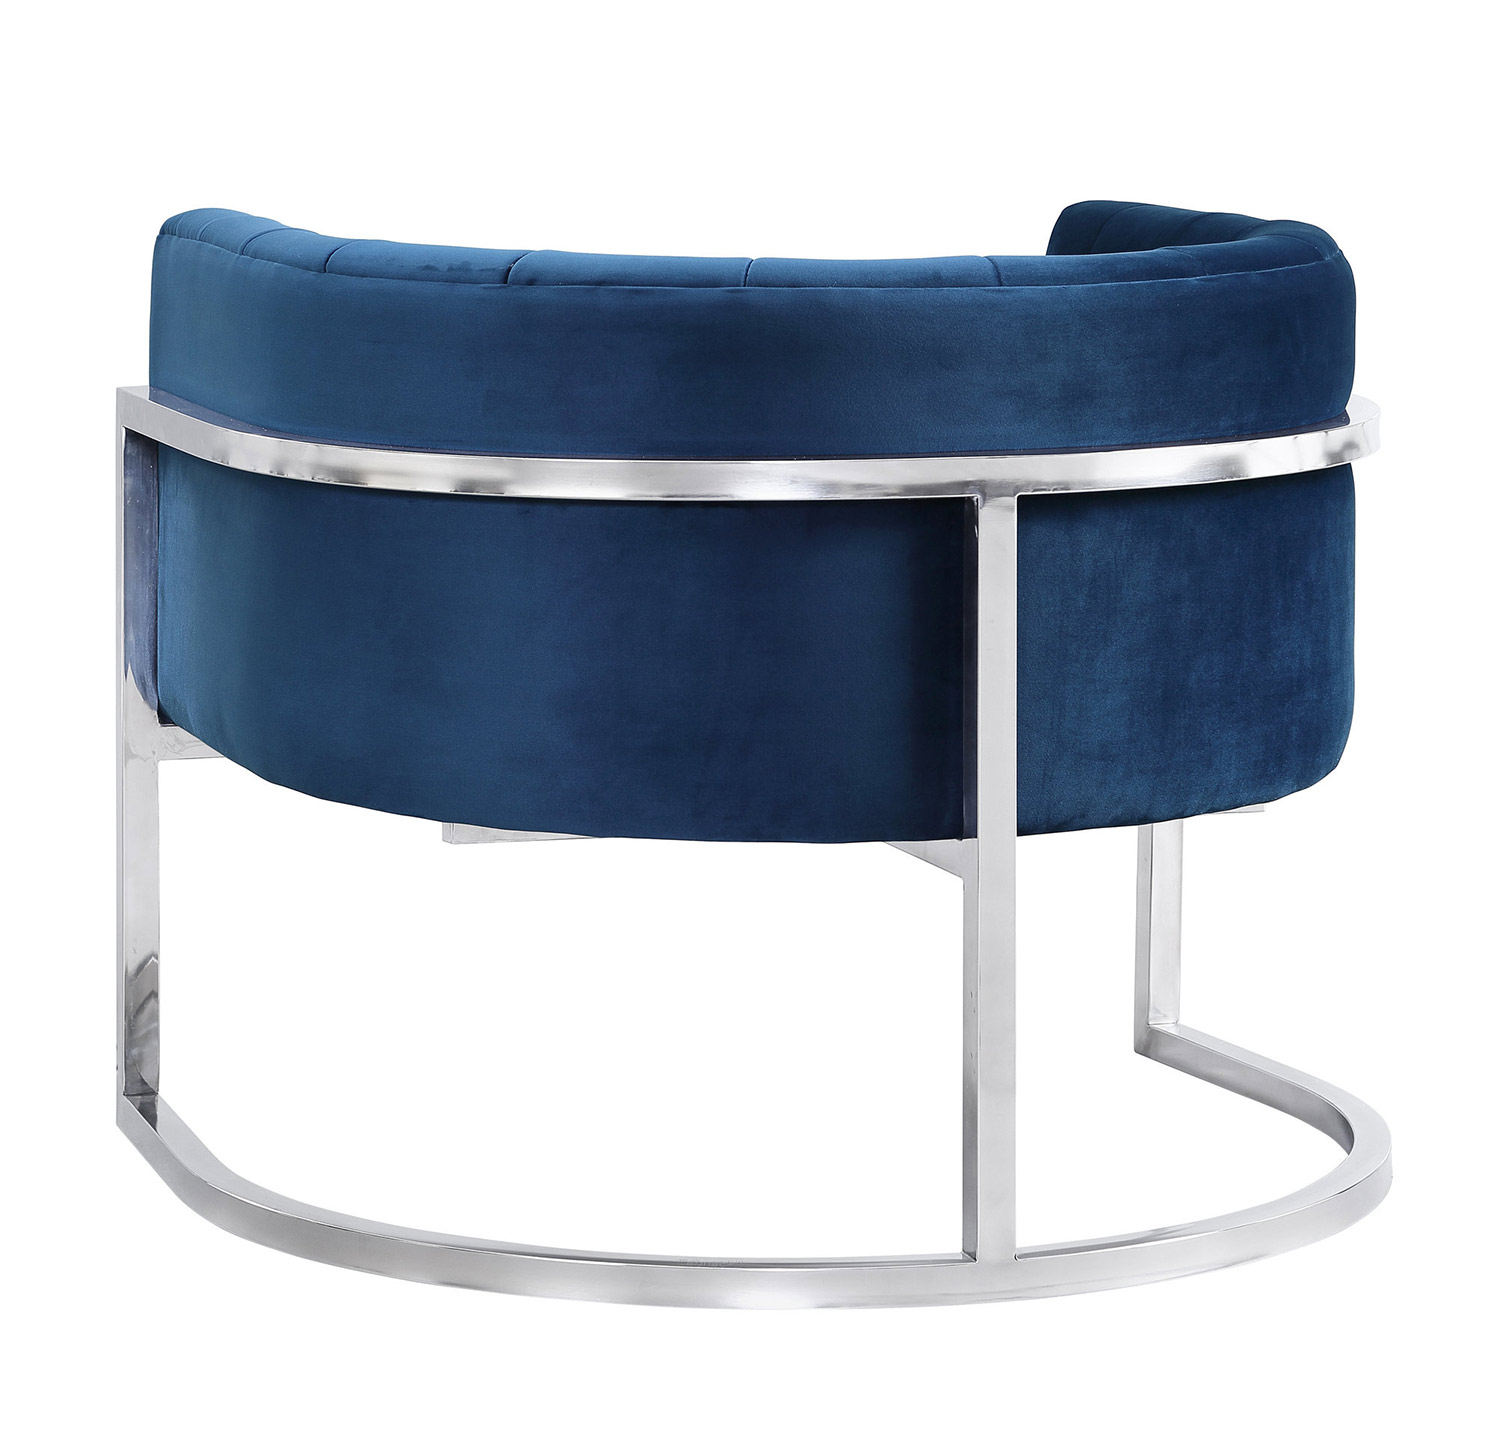 TOV Furniture Magnolia Chair with Silver Base - Navy